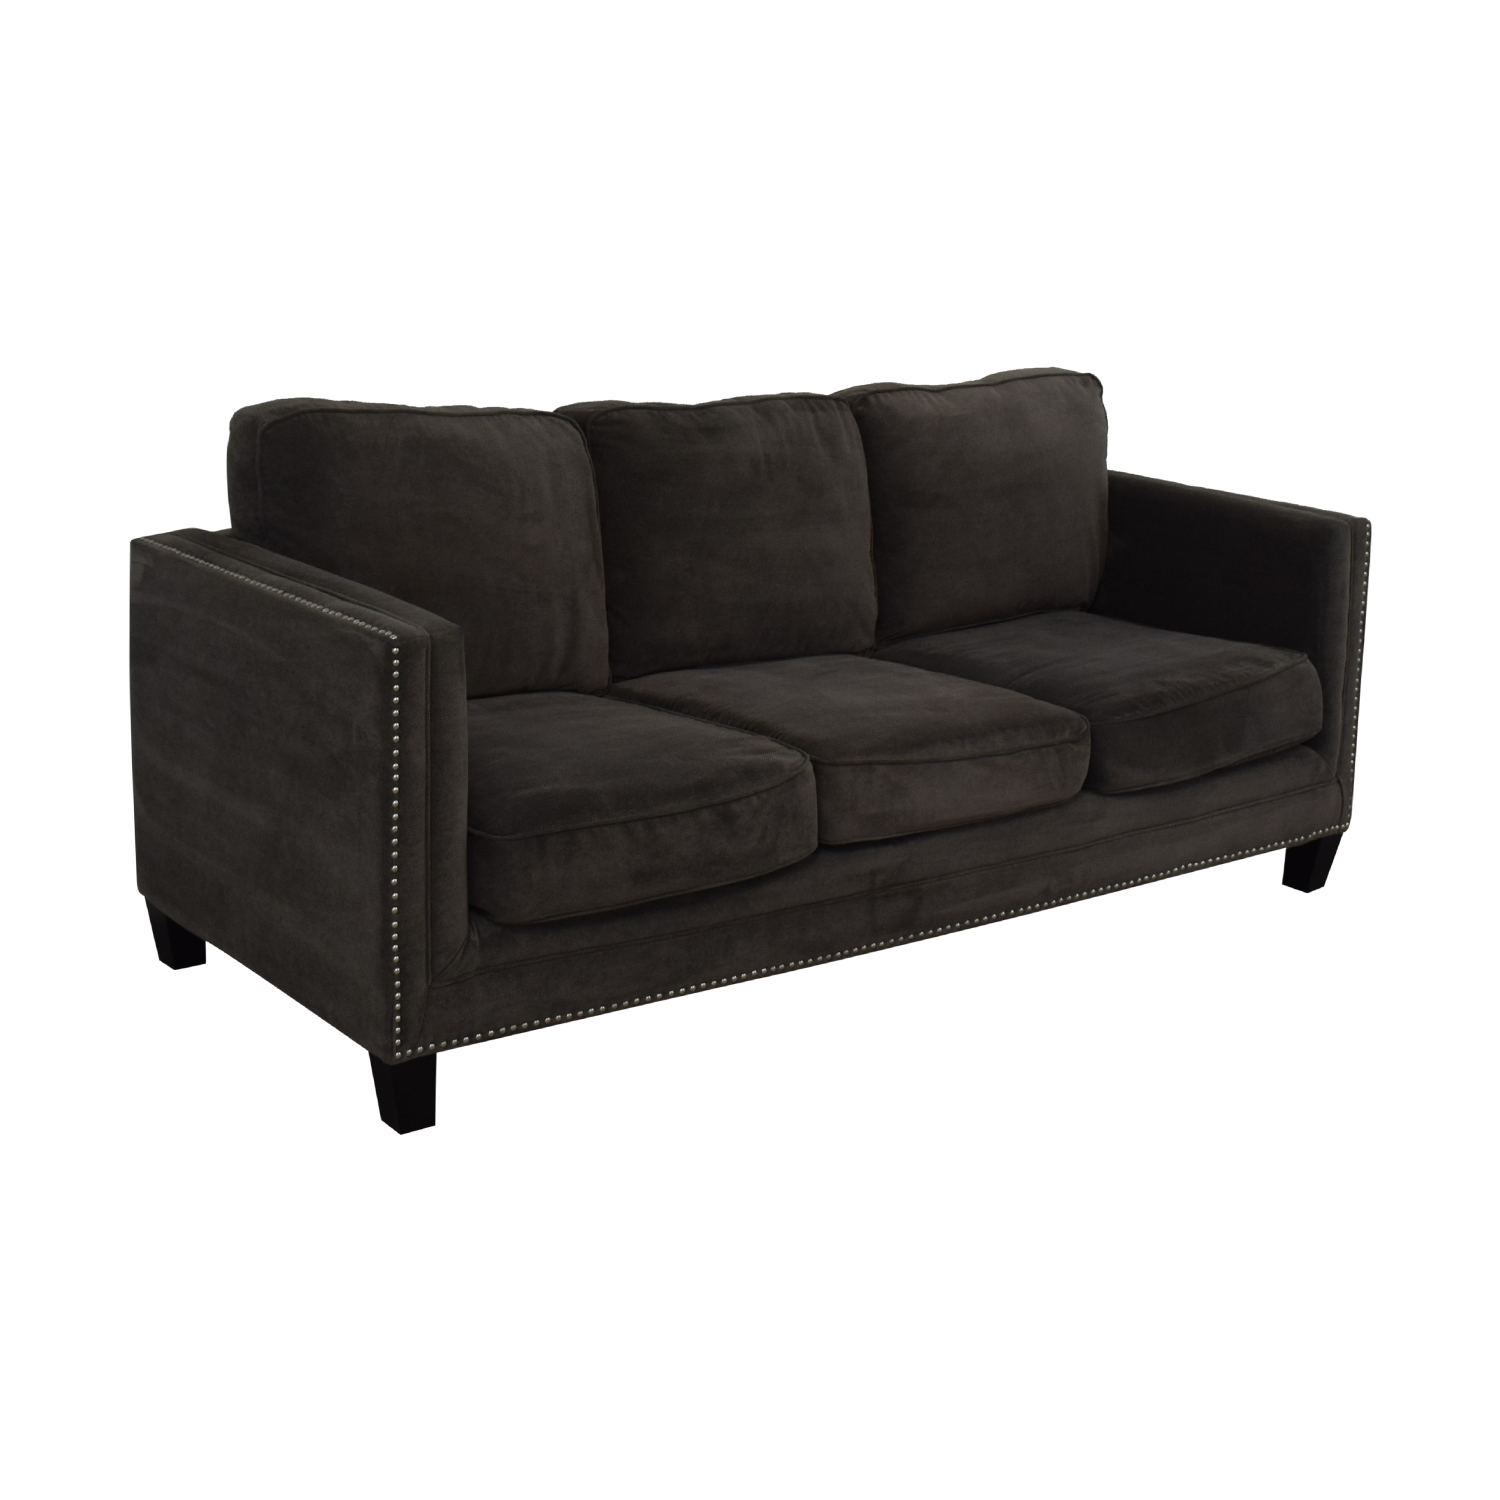 Emerald Home Carlton Sofa Emerald Home Furnishings